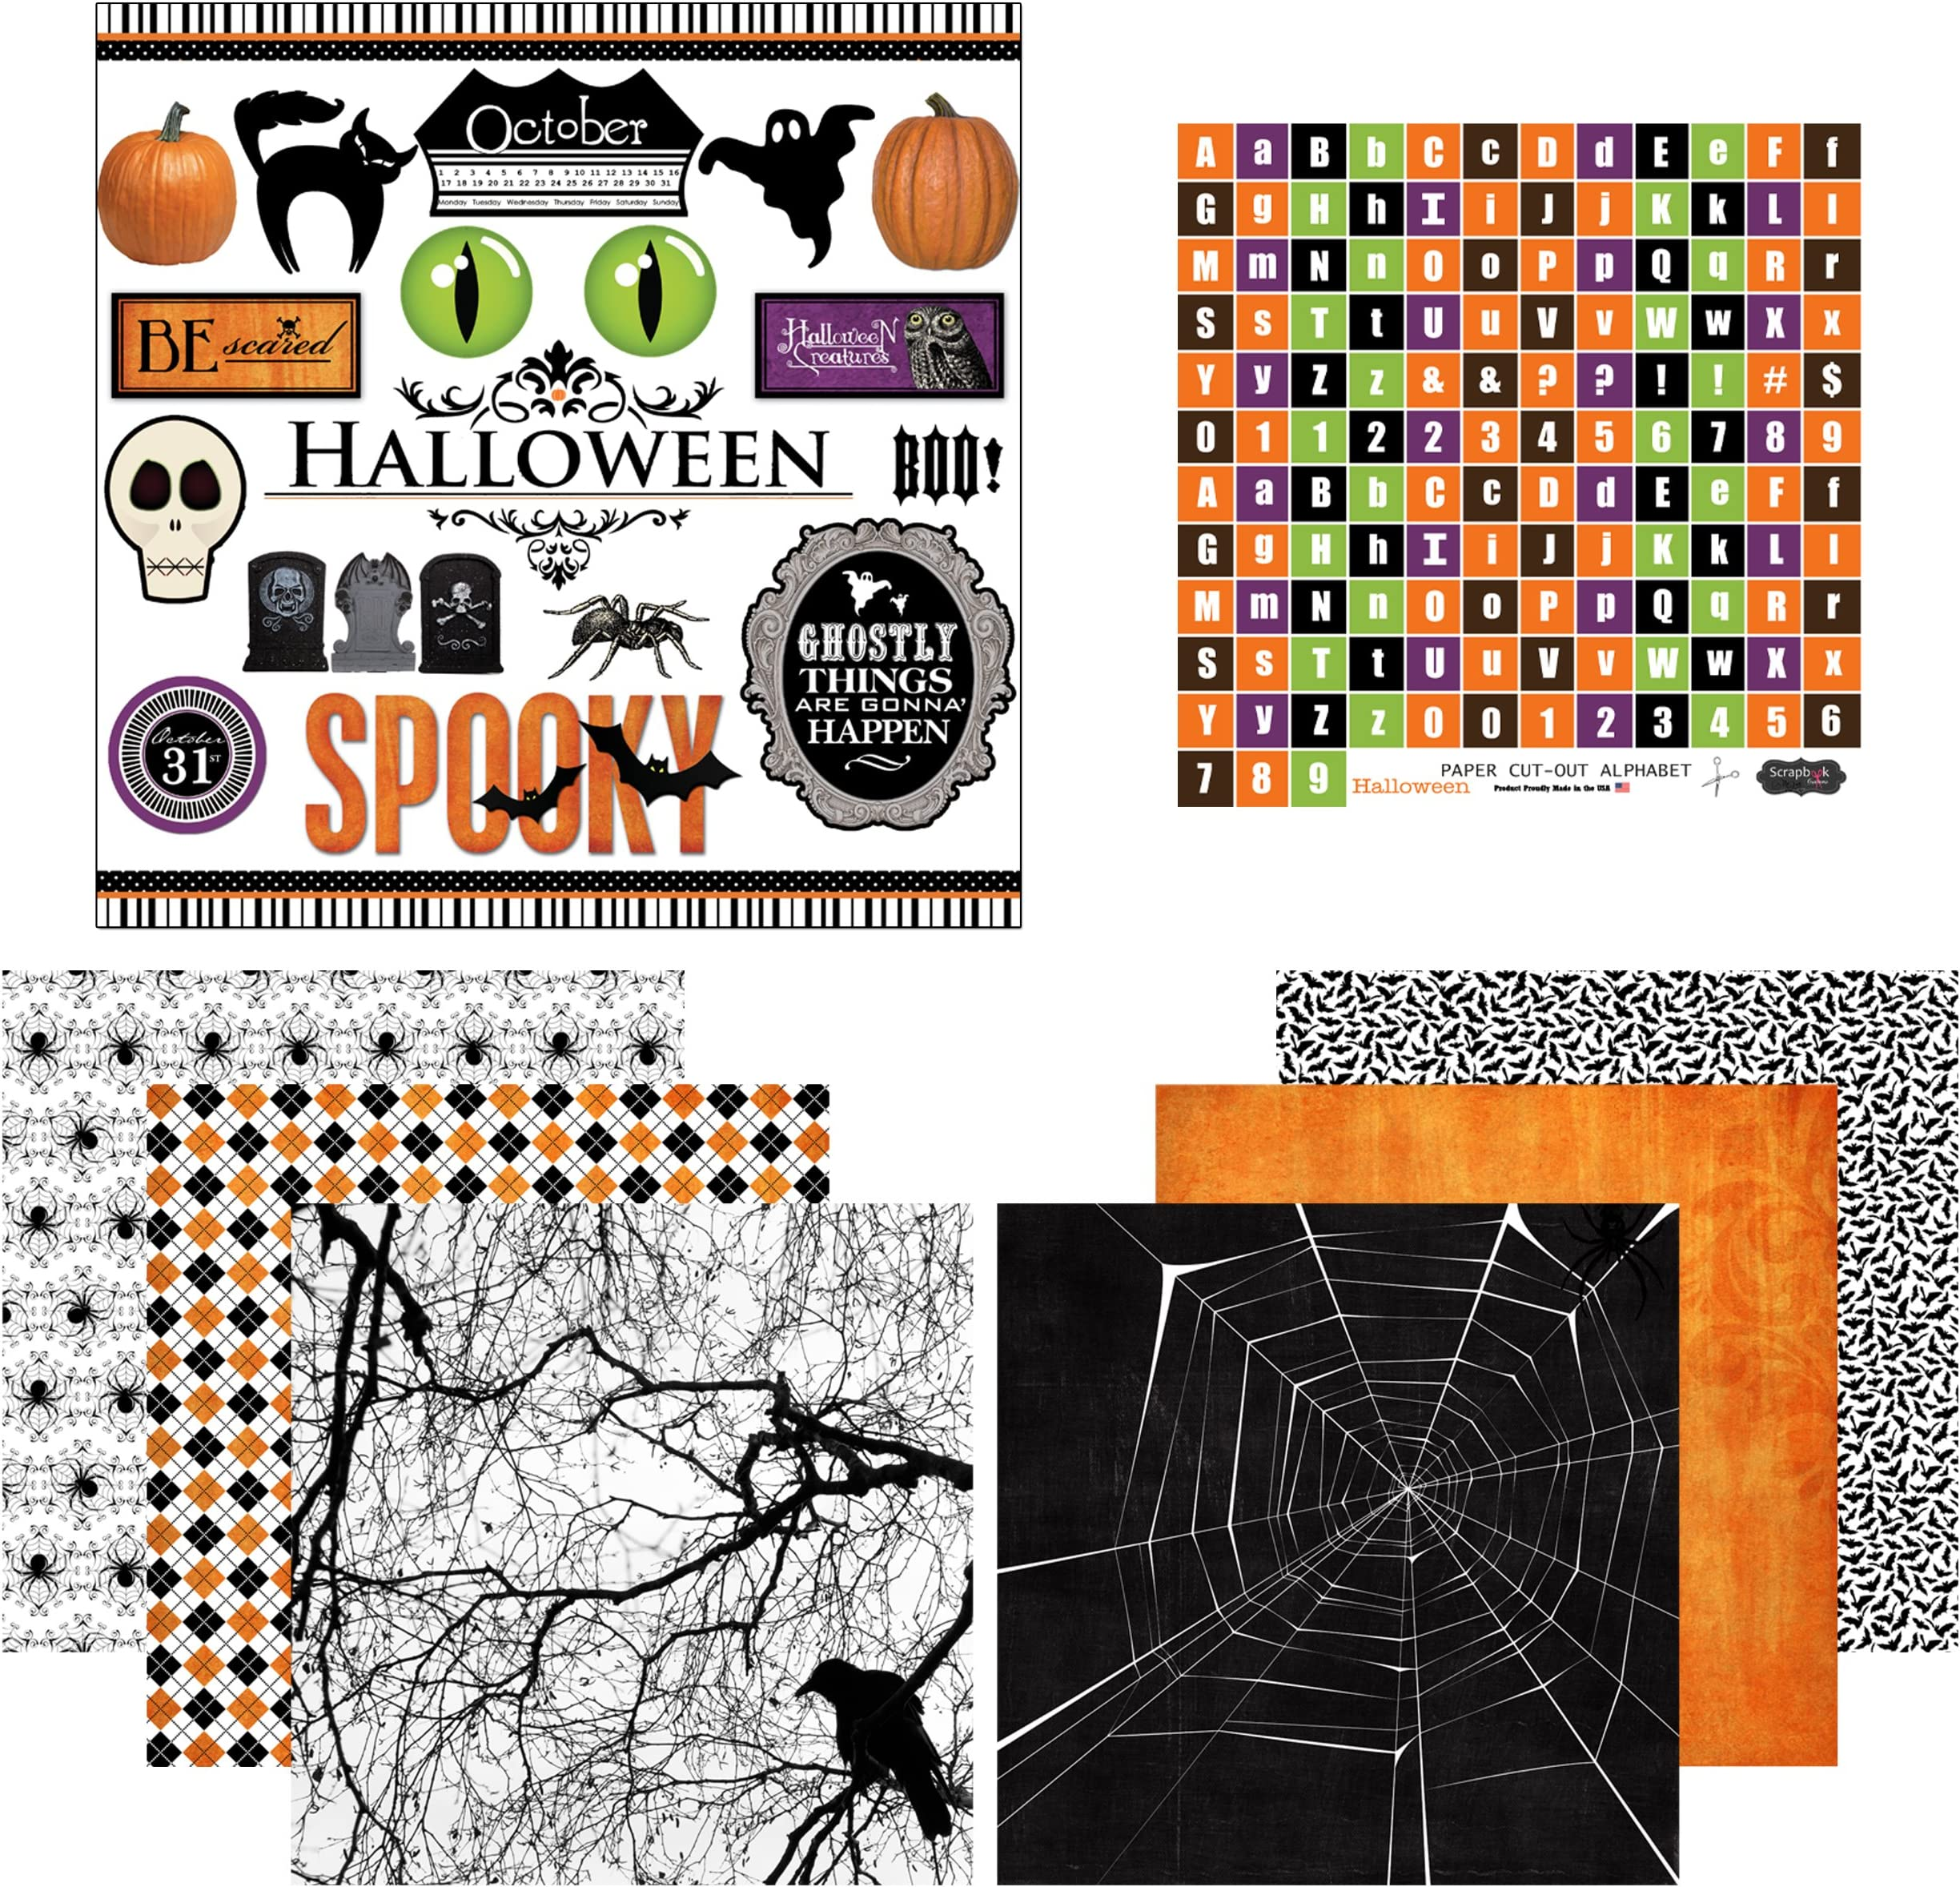 3 Sheets Included Spooky Craftober Planner Paper Sticker Sheet Set